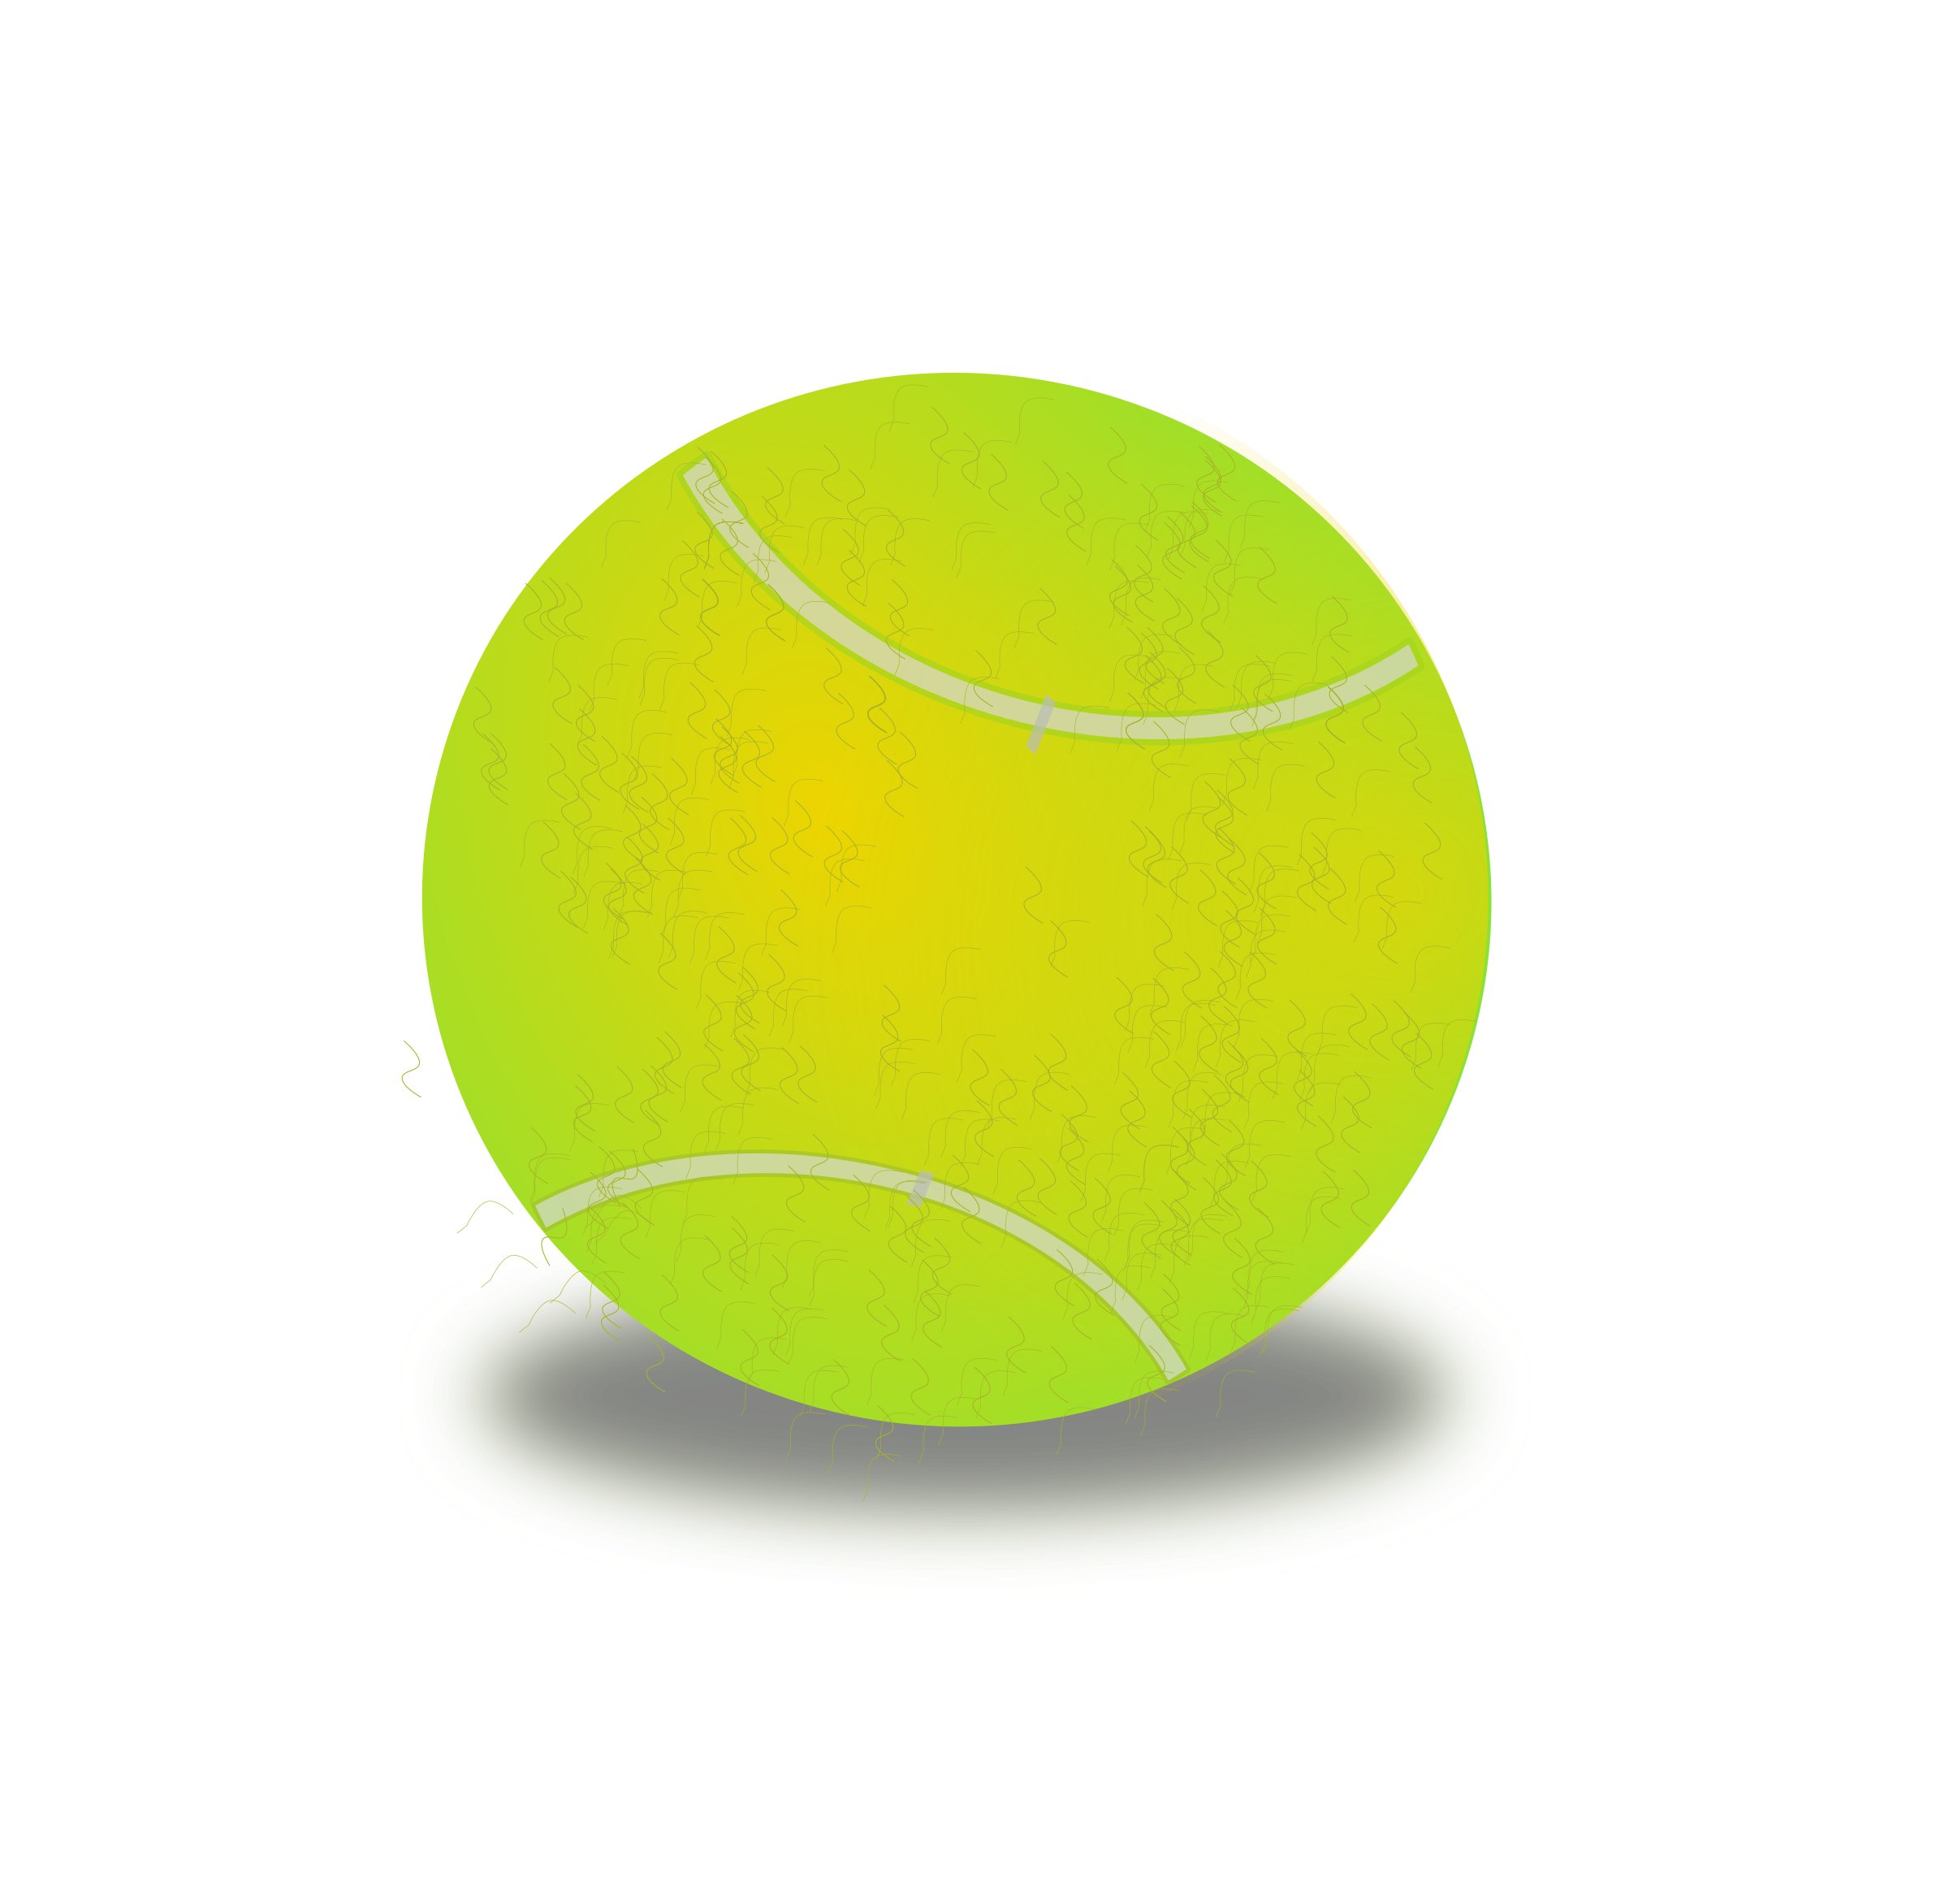 Tennis ball by netalloy